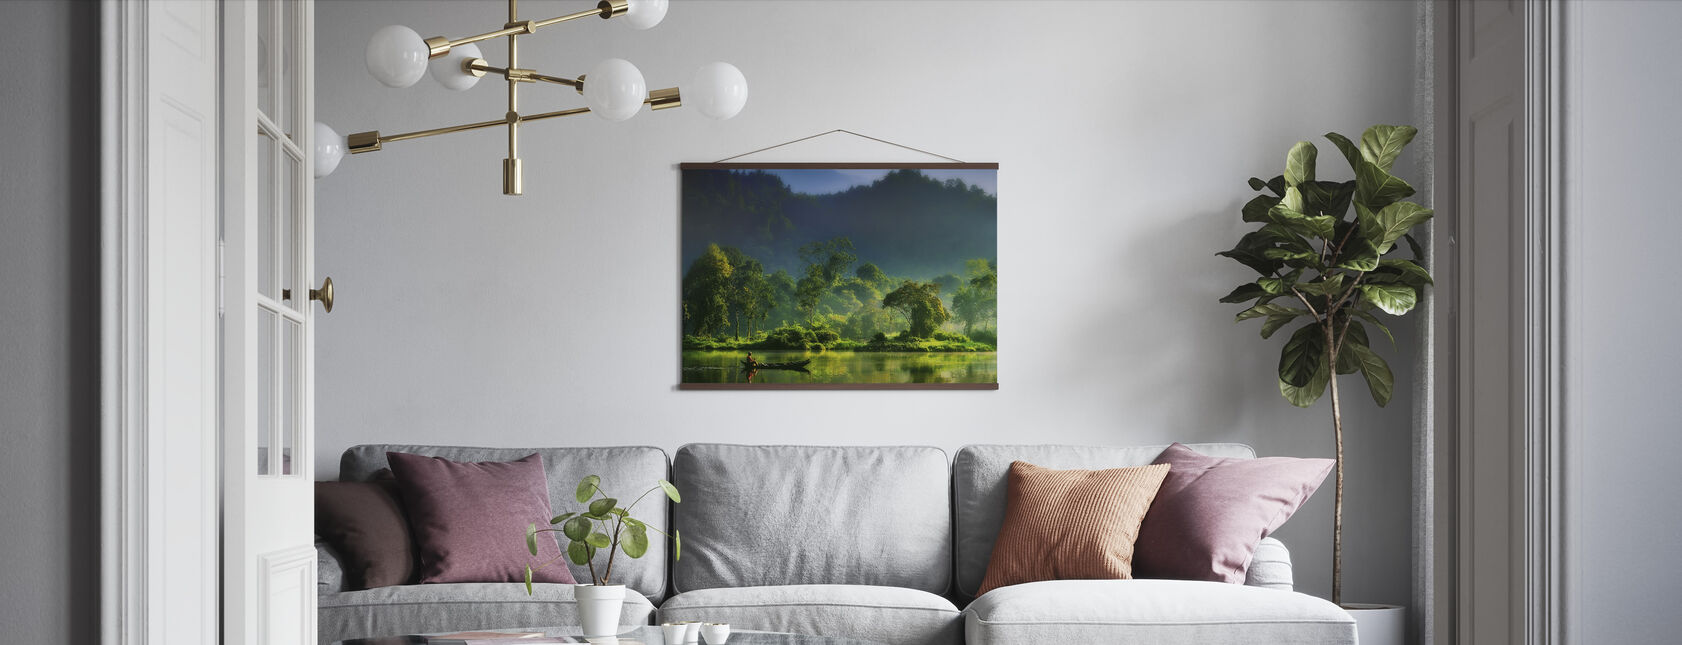 Painting of Nature - Poster - Living Room